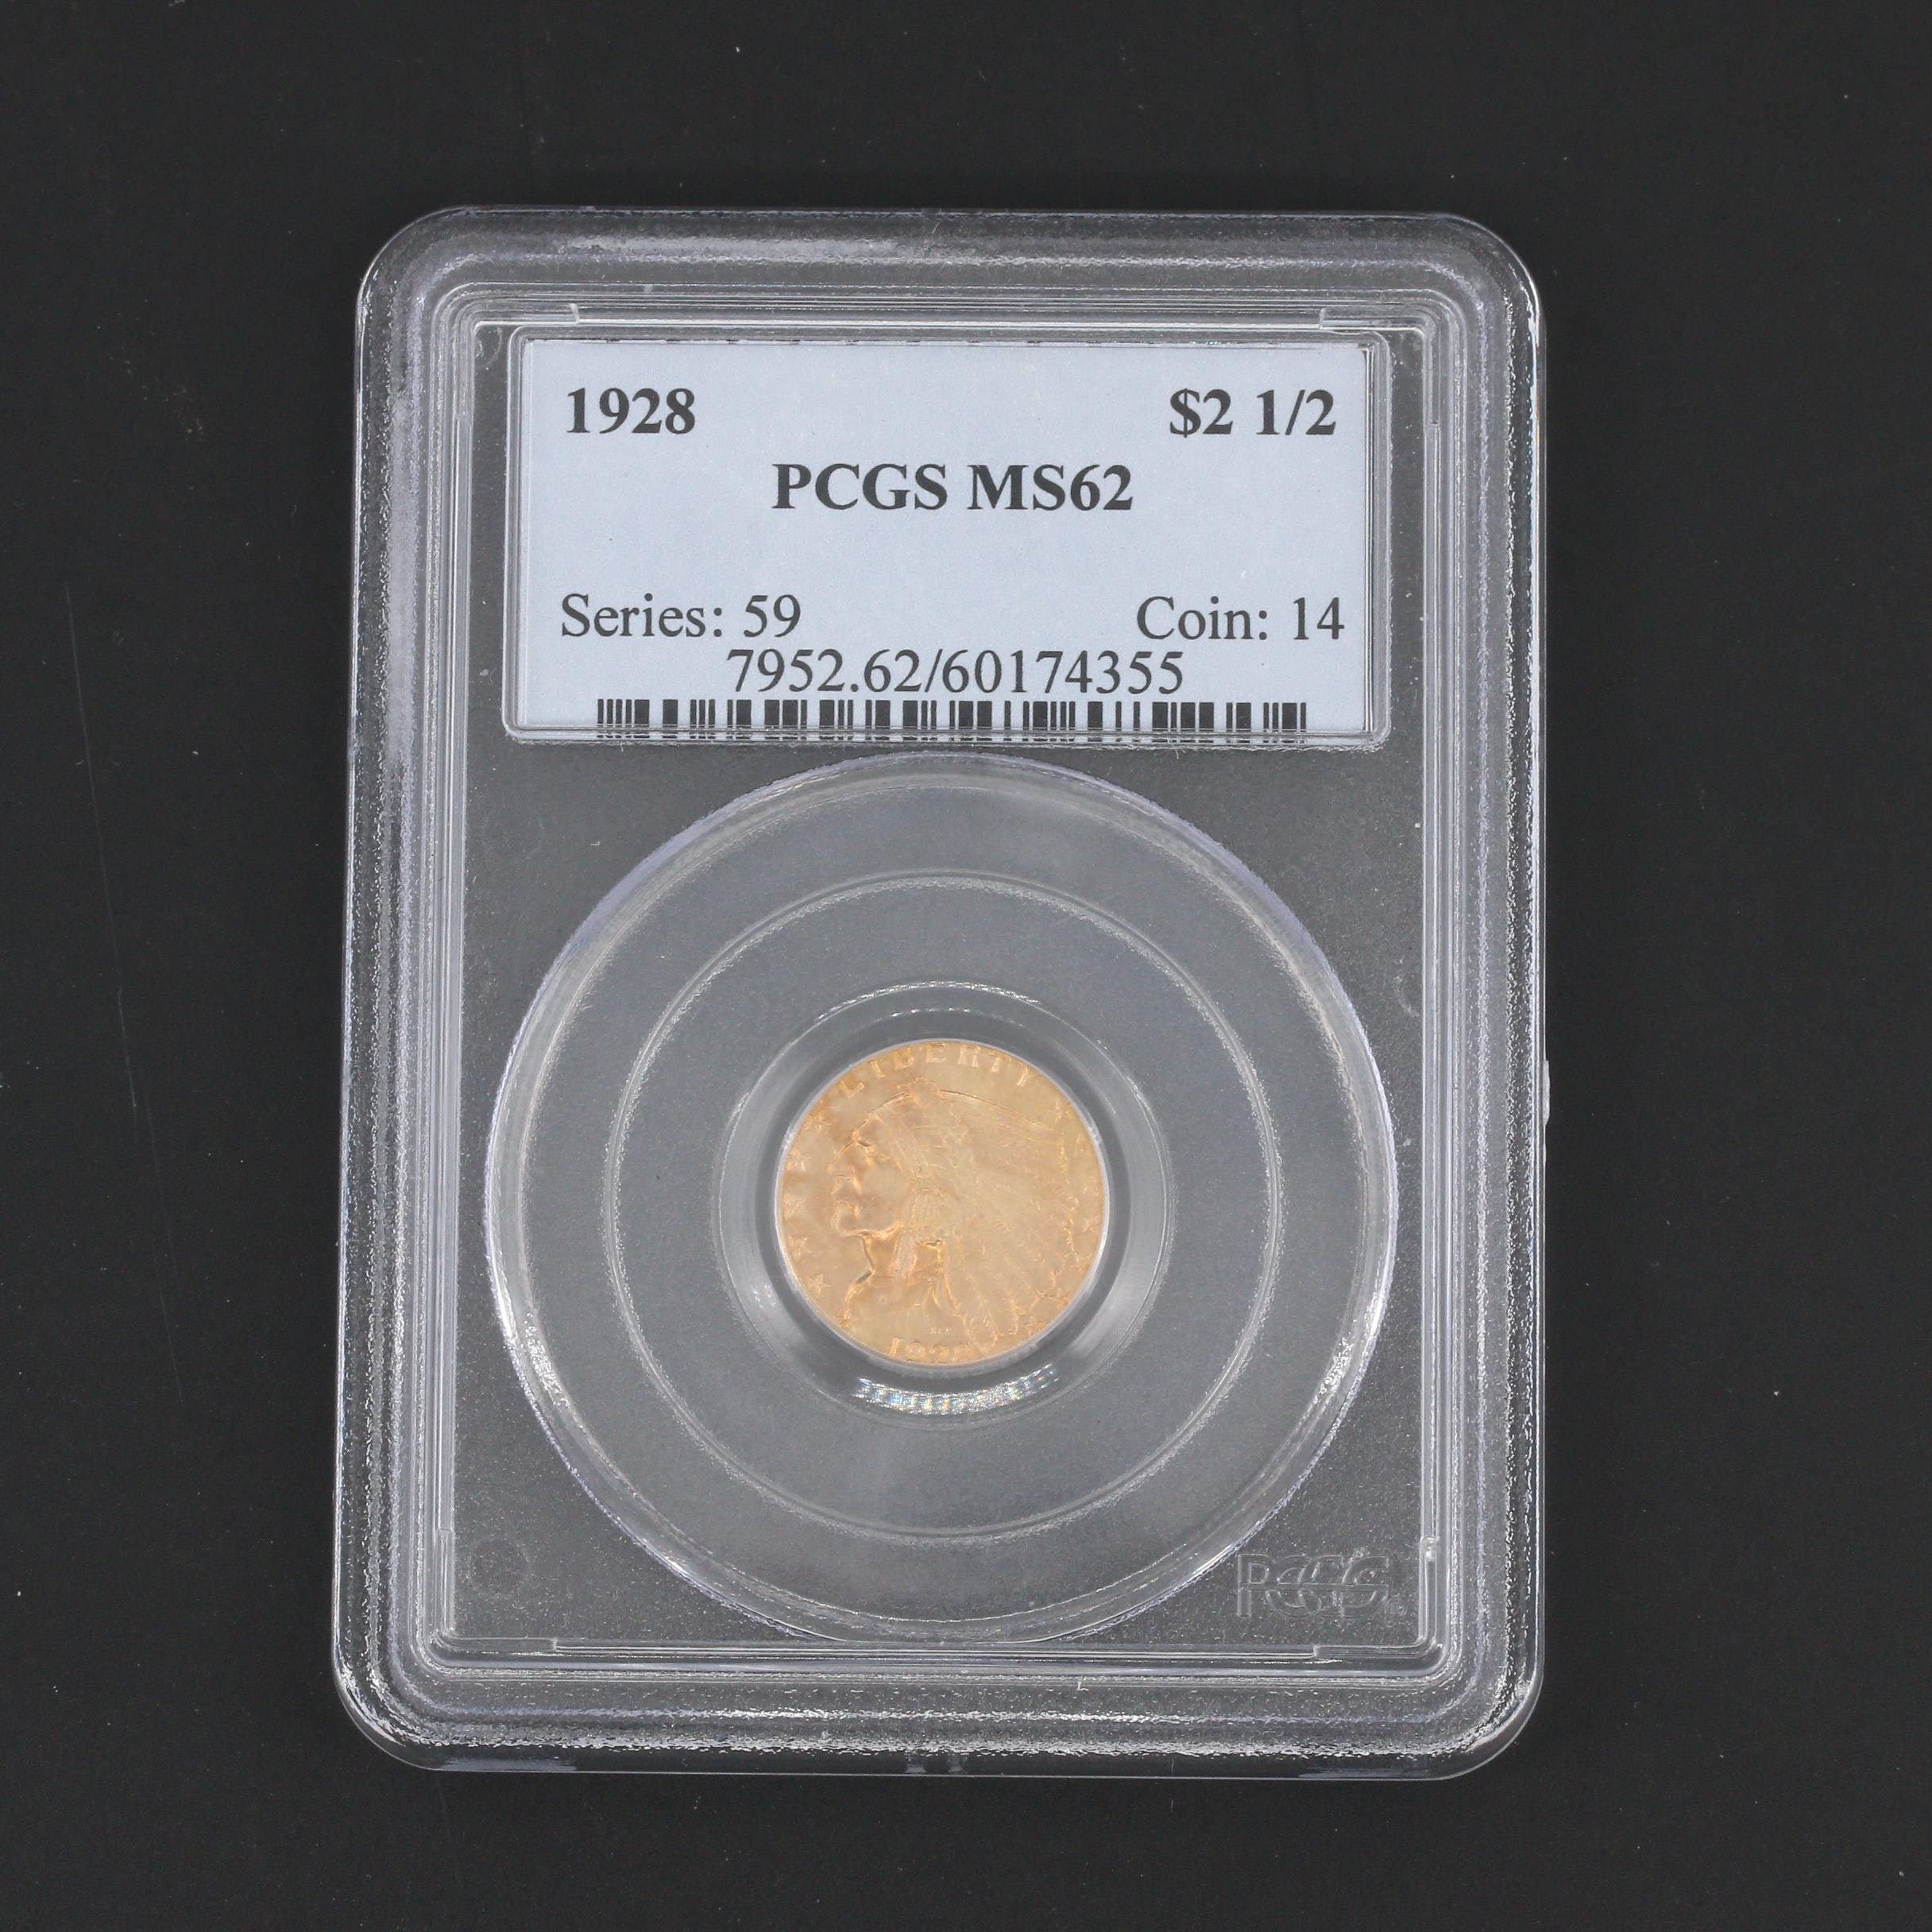 PCGS Graded MS62 1928 Indian Head Quarter Eagle $2.50 Gold Coin